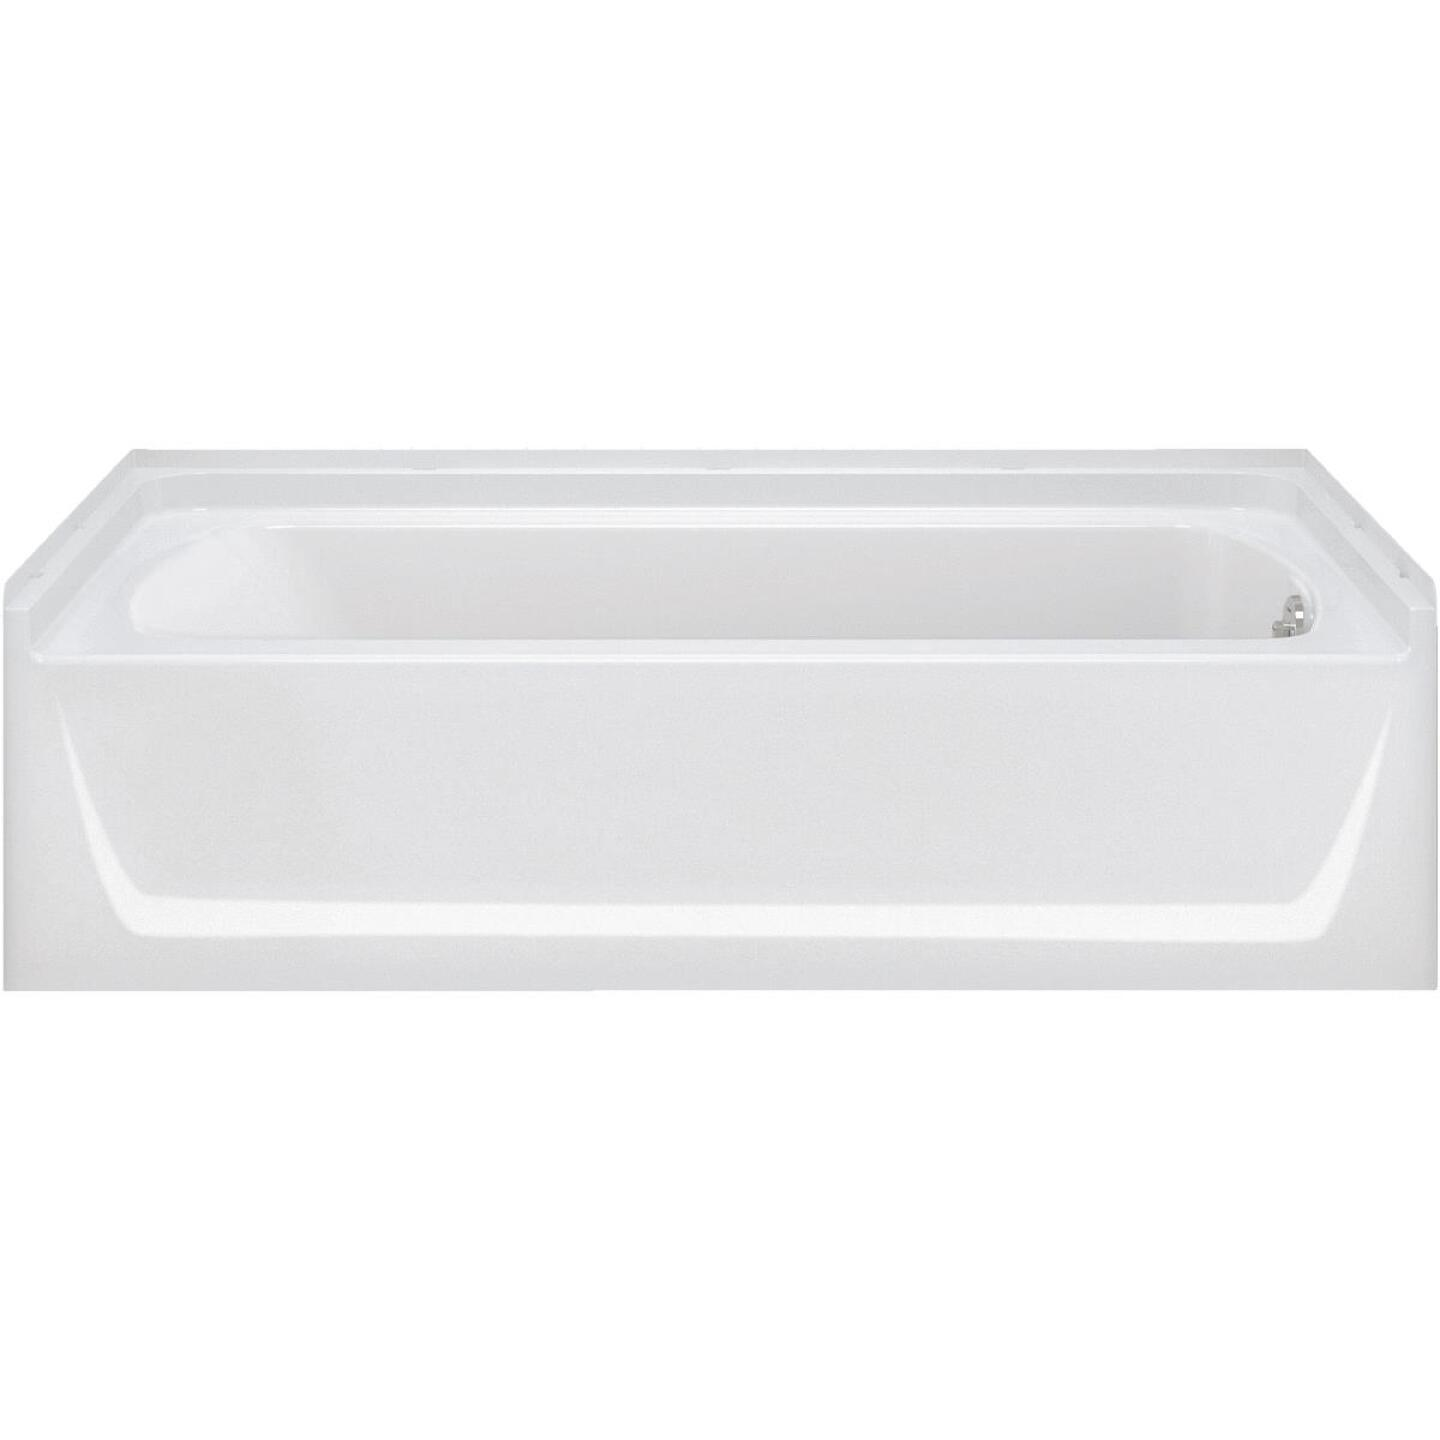 Sterling Ensemble 7117 Series 60 In. L x 30-1/4 In. W x 16 In. D Right Drain Bathtub in White Image 1